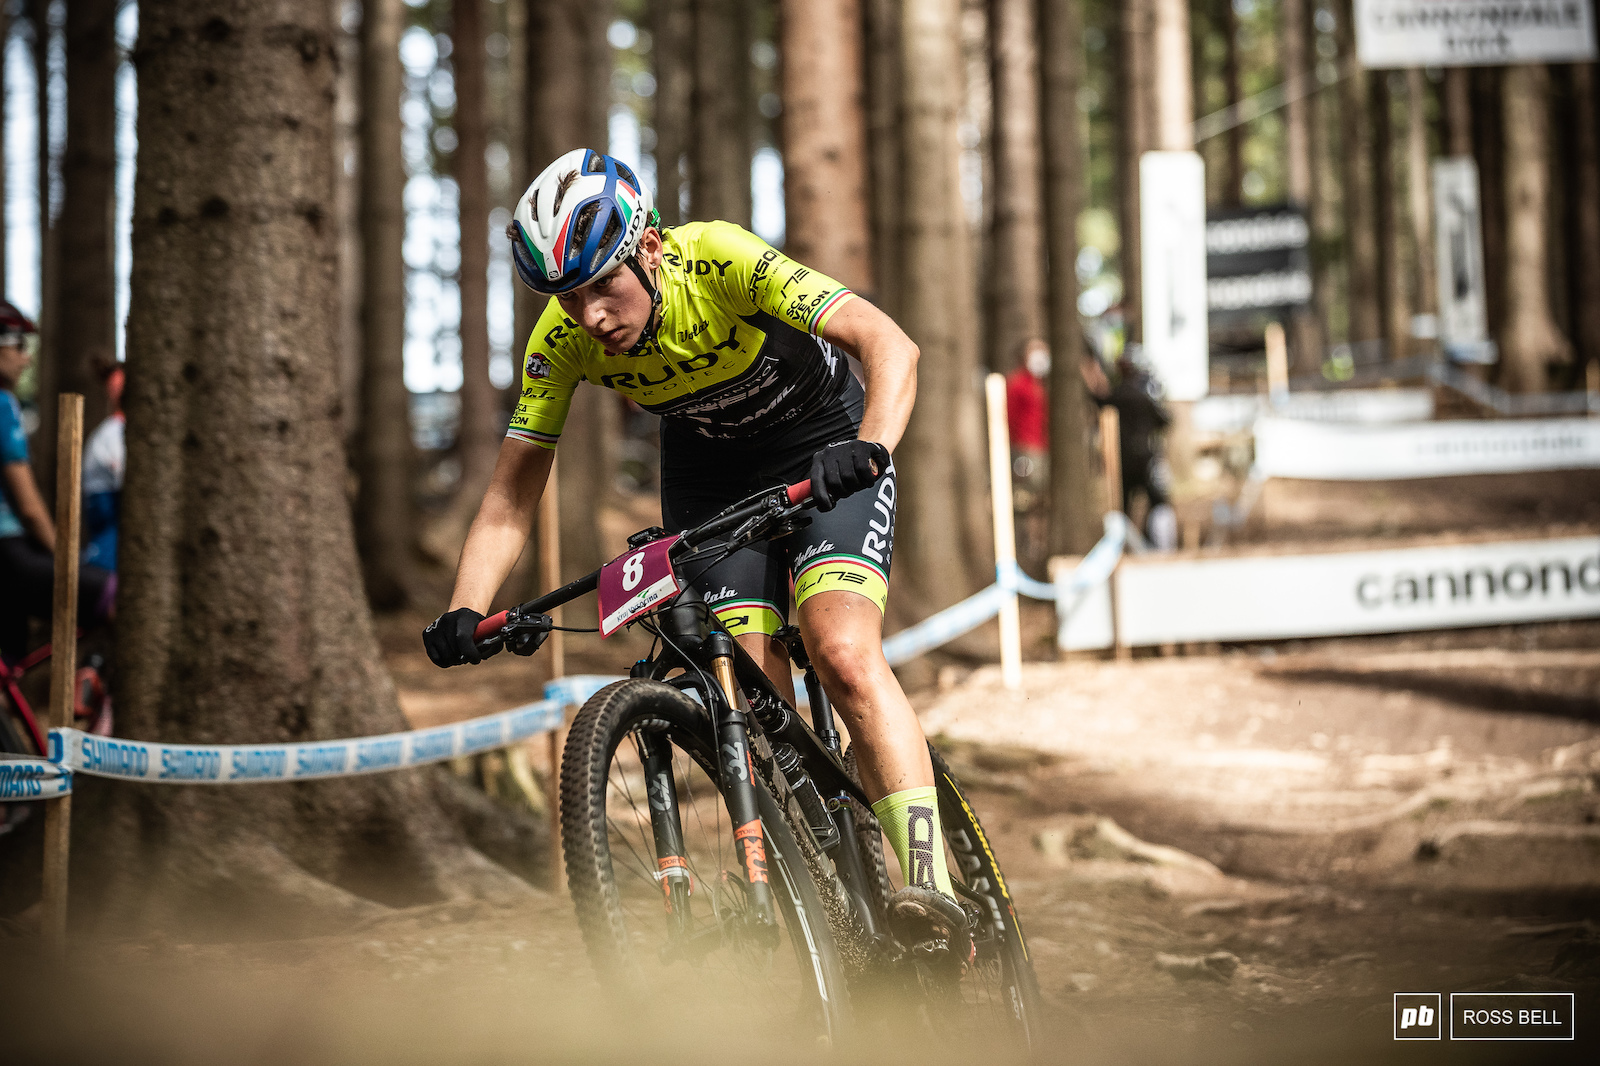 Friday s winner Giorgia Marchet couldn t find that form and ended up in 5th.